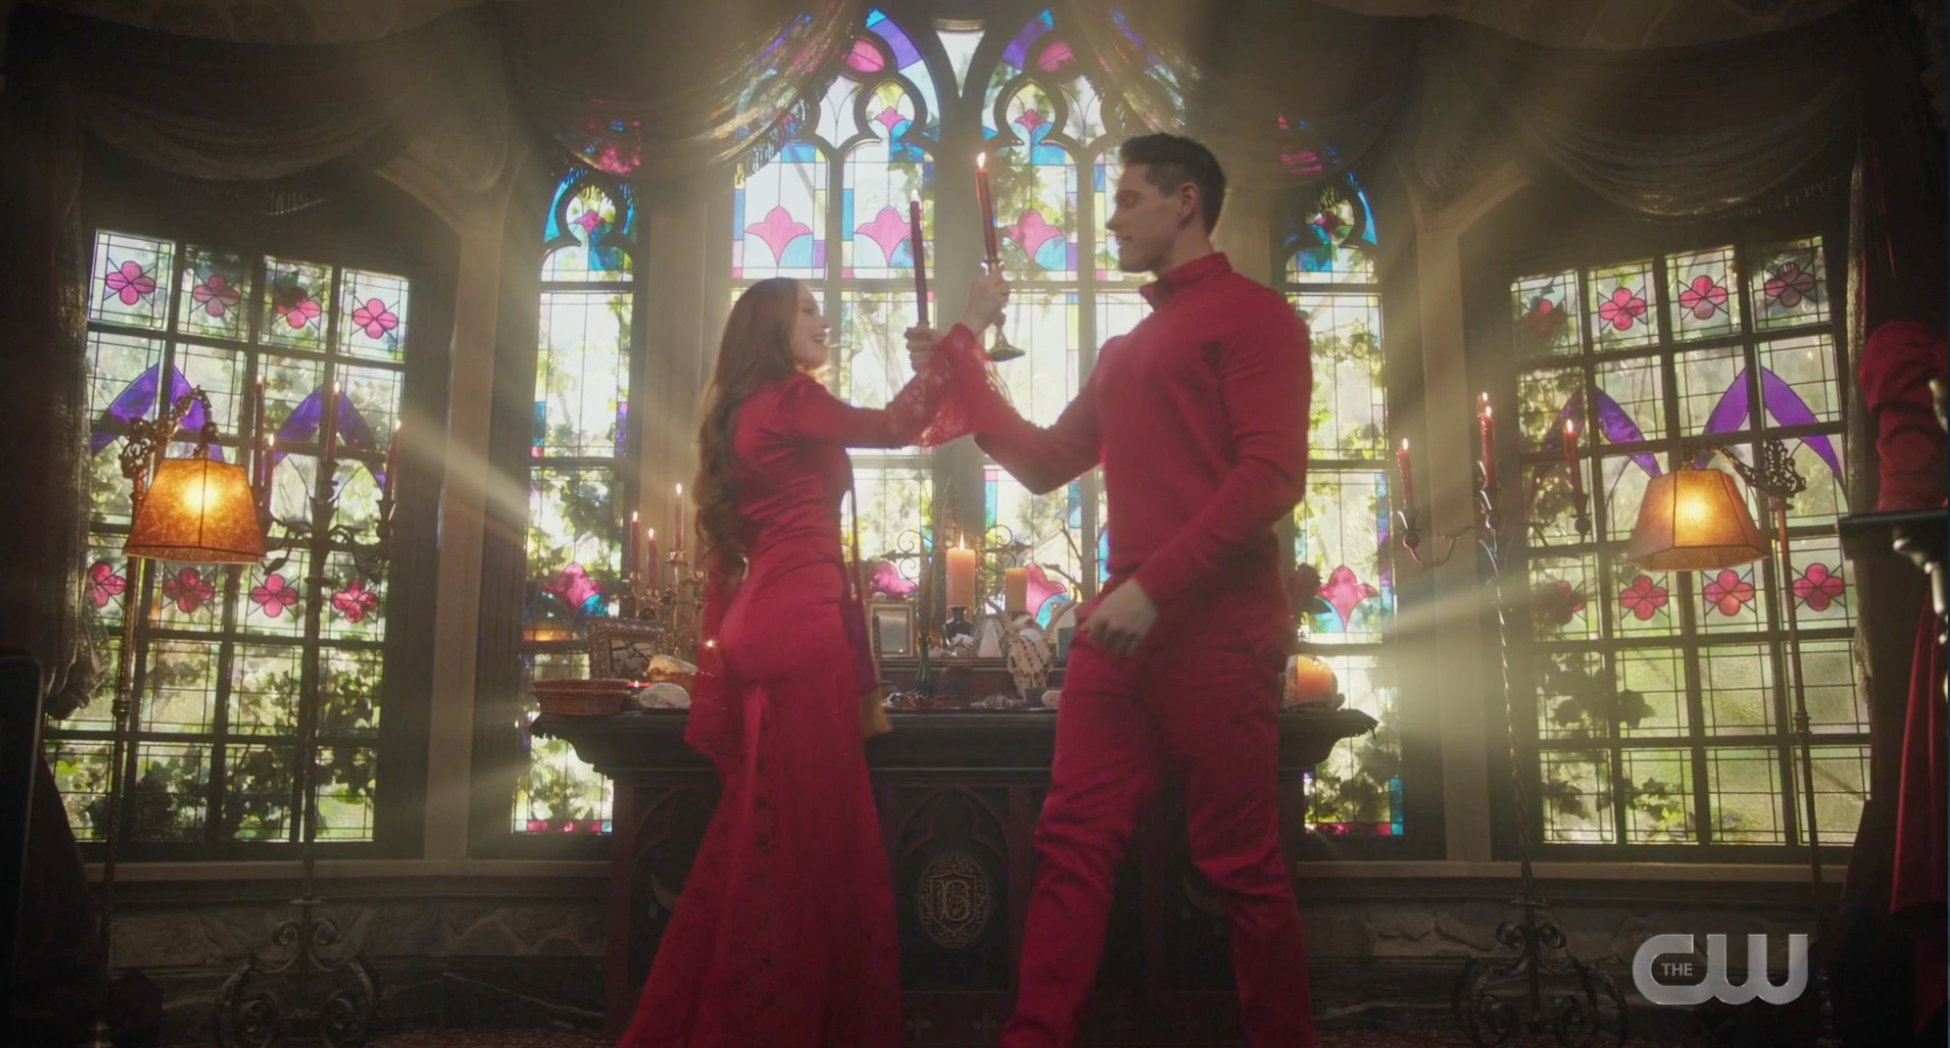 Cheryl and Kevin dancing with candles.